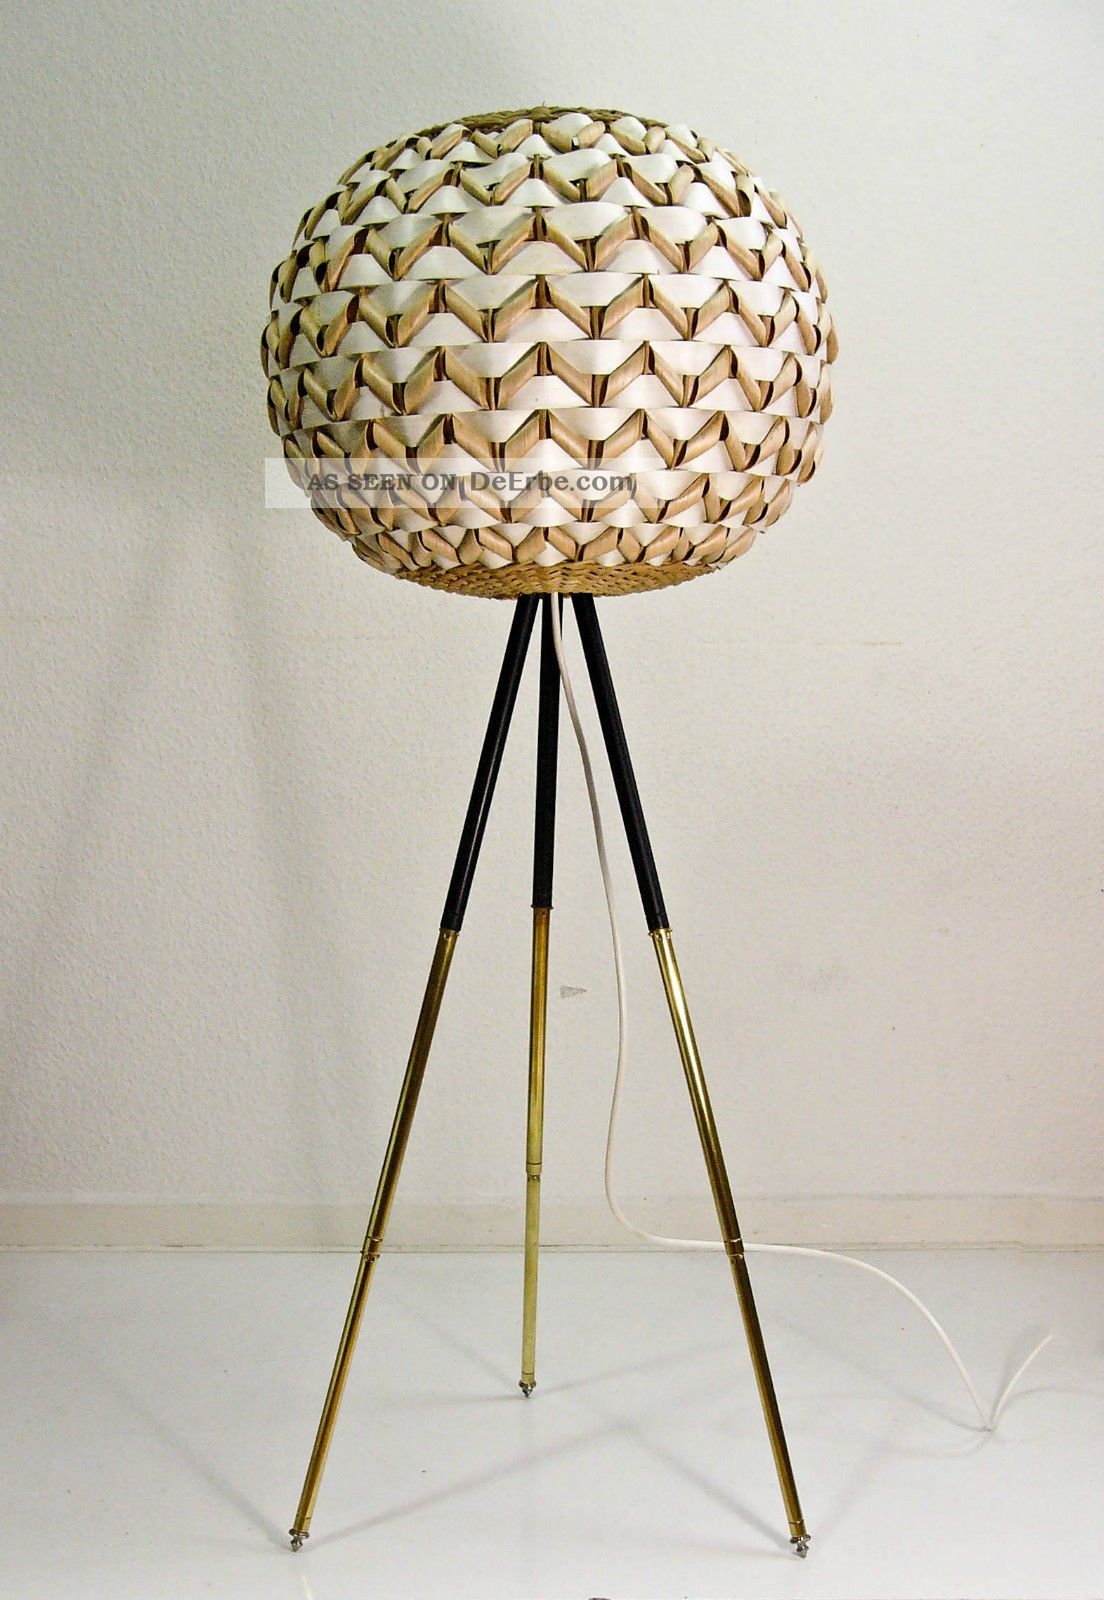 Gold Kaufen Kiel Dreibein Lampe. Simple The Best Ideas About Stehlampe On